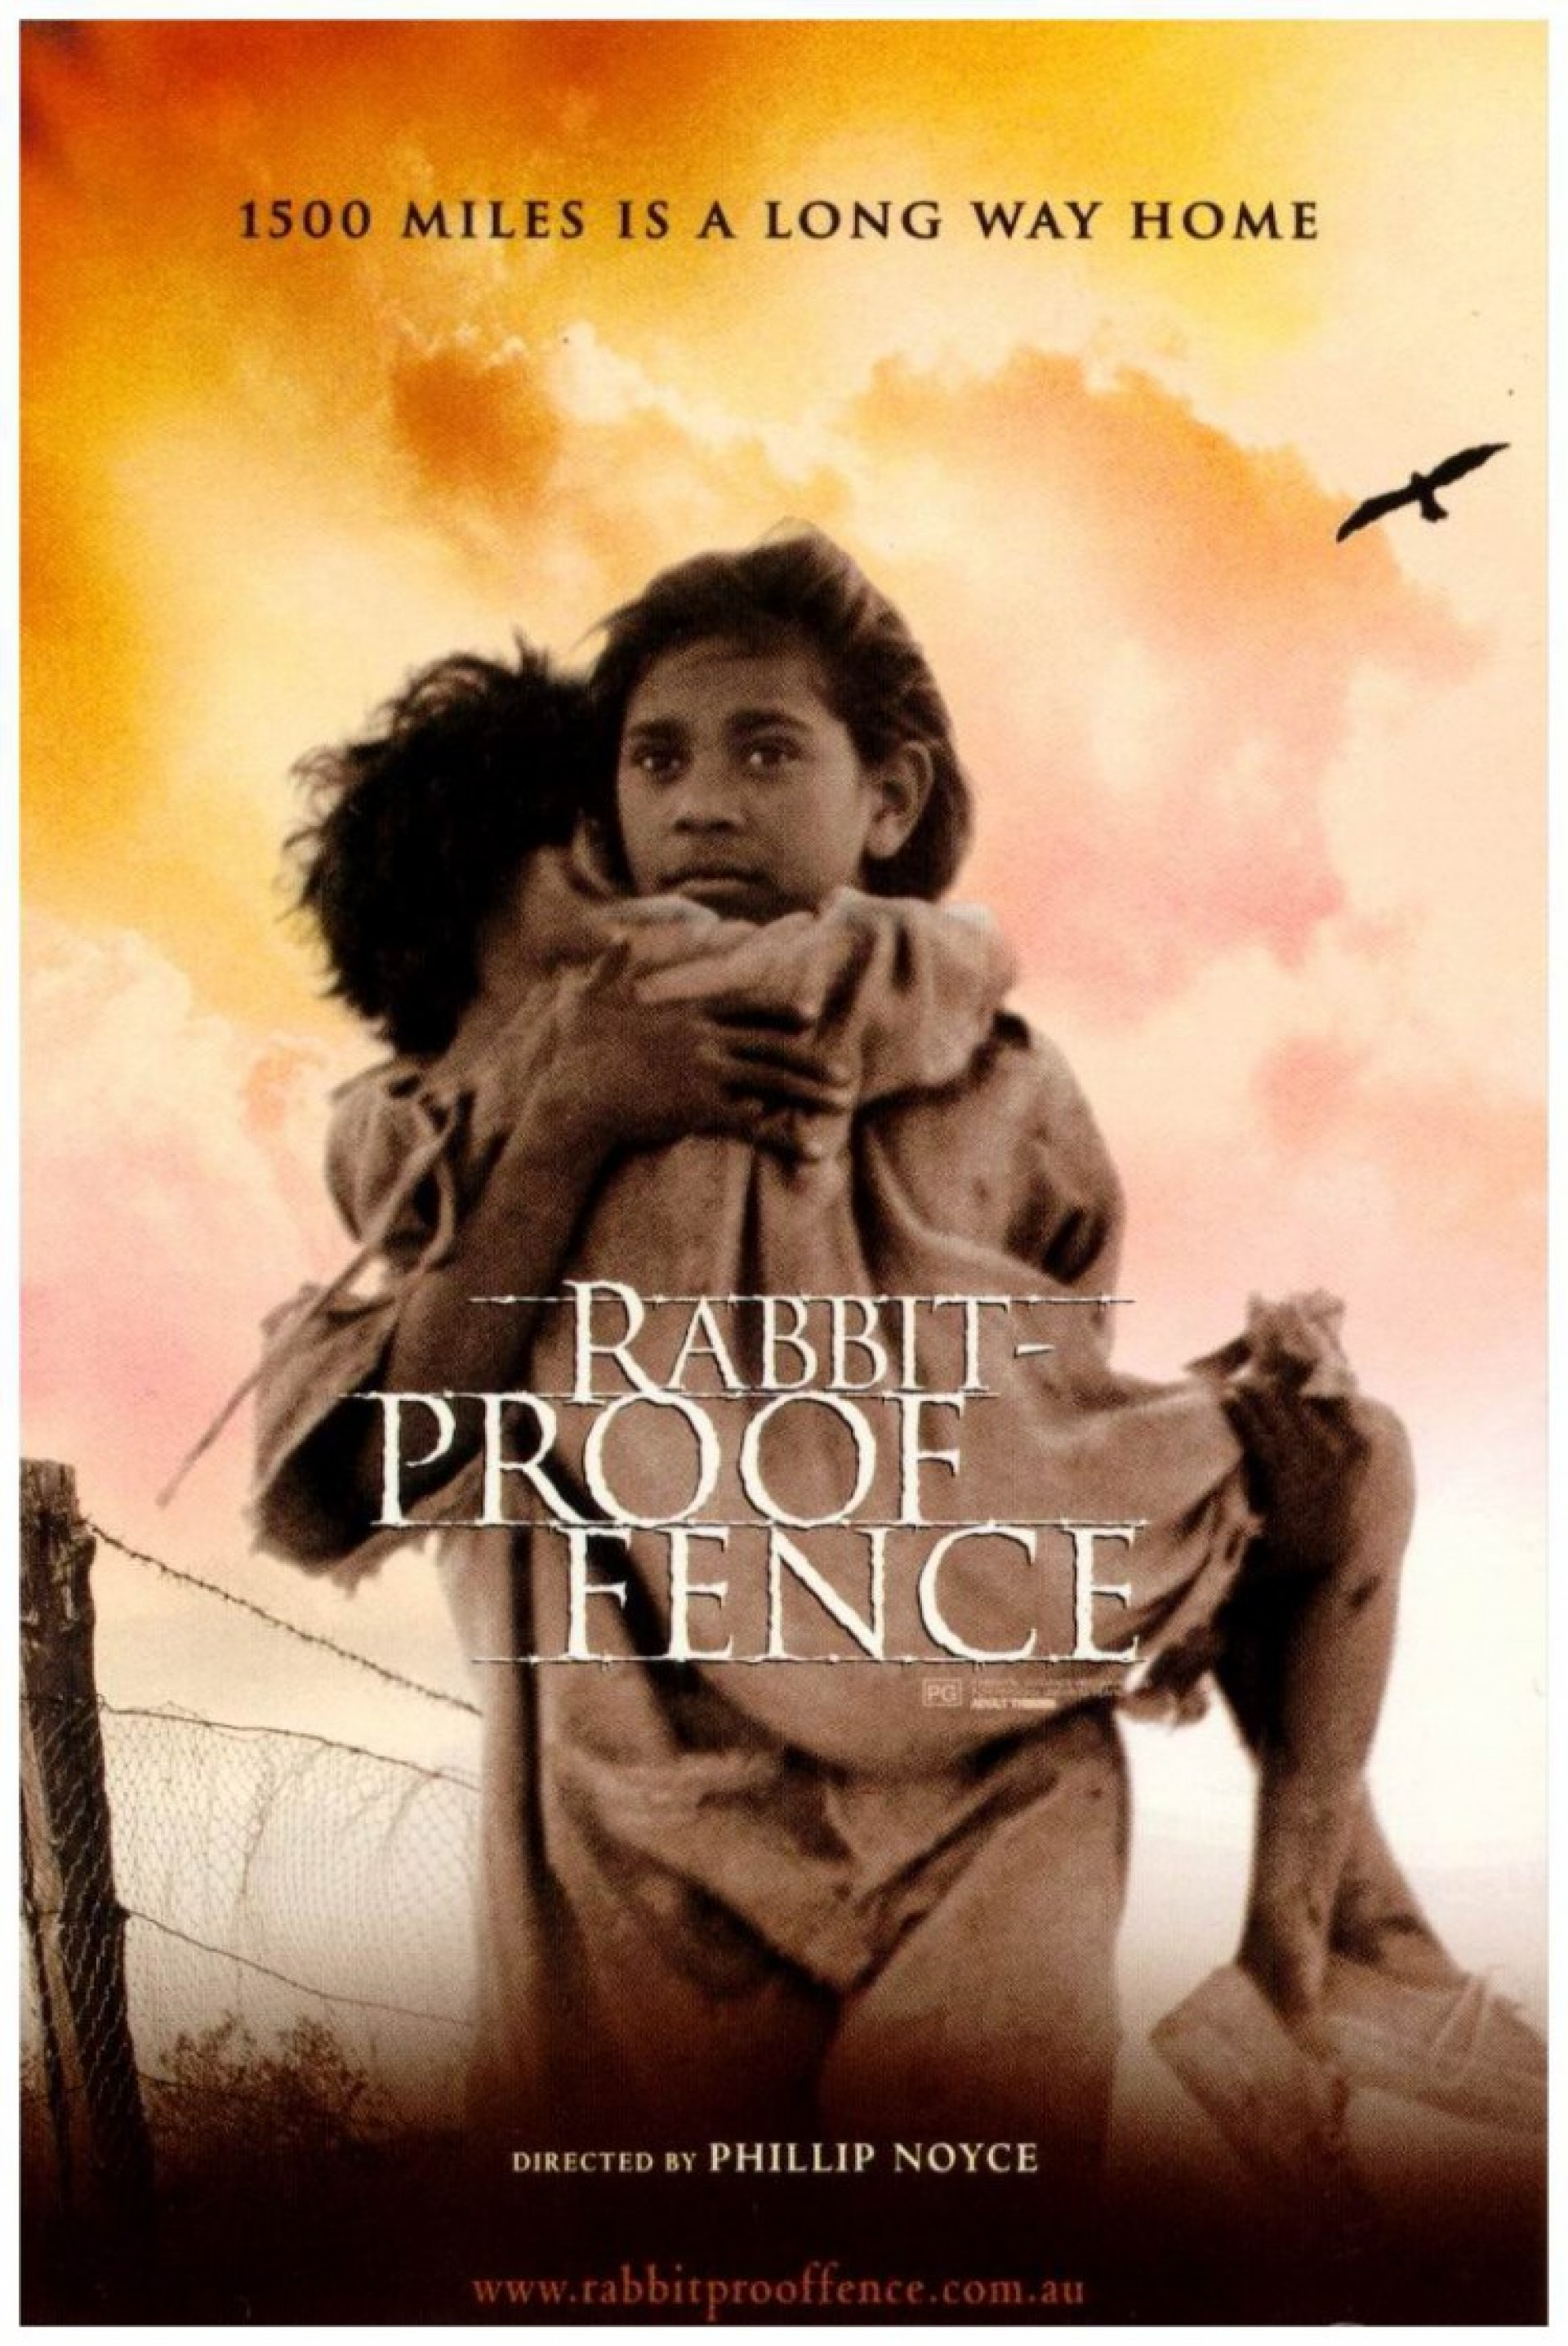 003 Rabbit Proof Fence Film Review Essay 1295772578 48 Top 1920